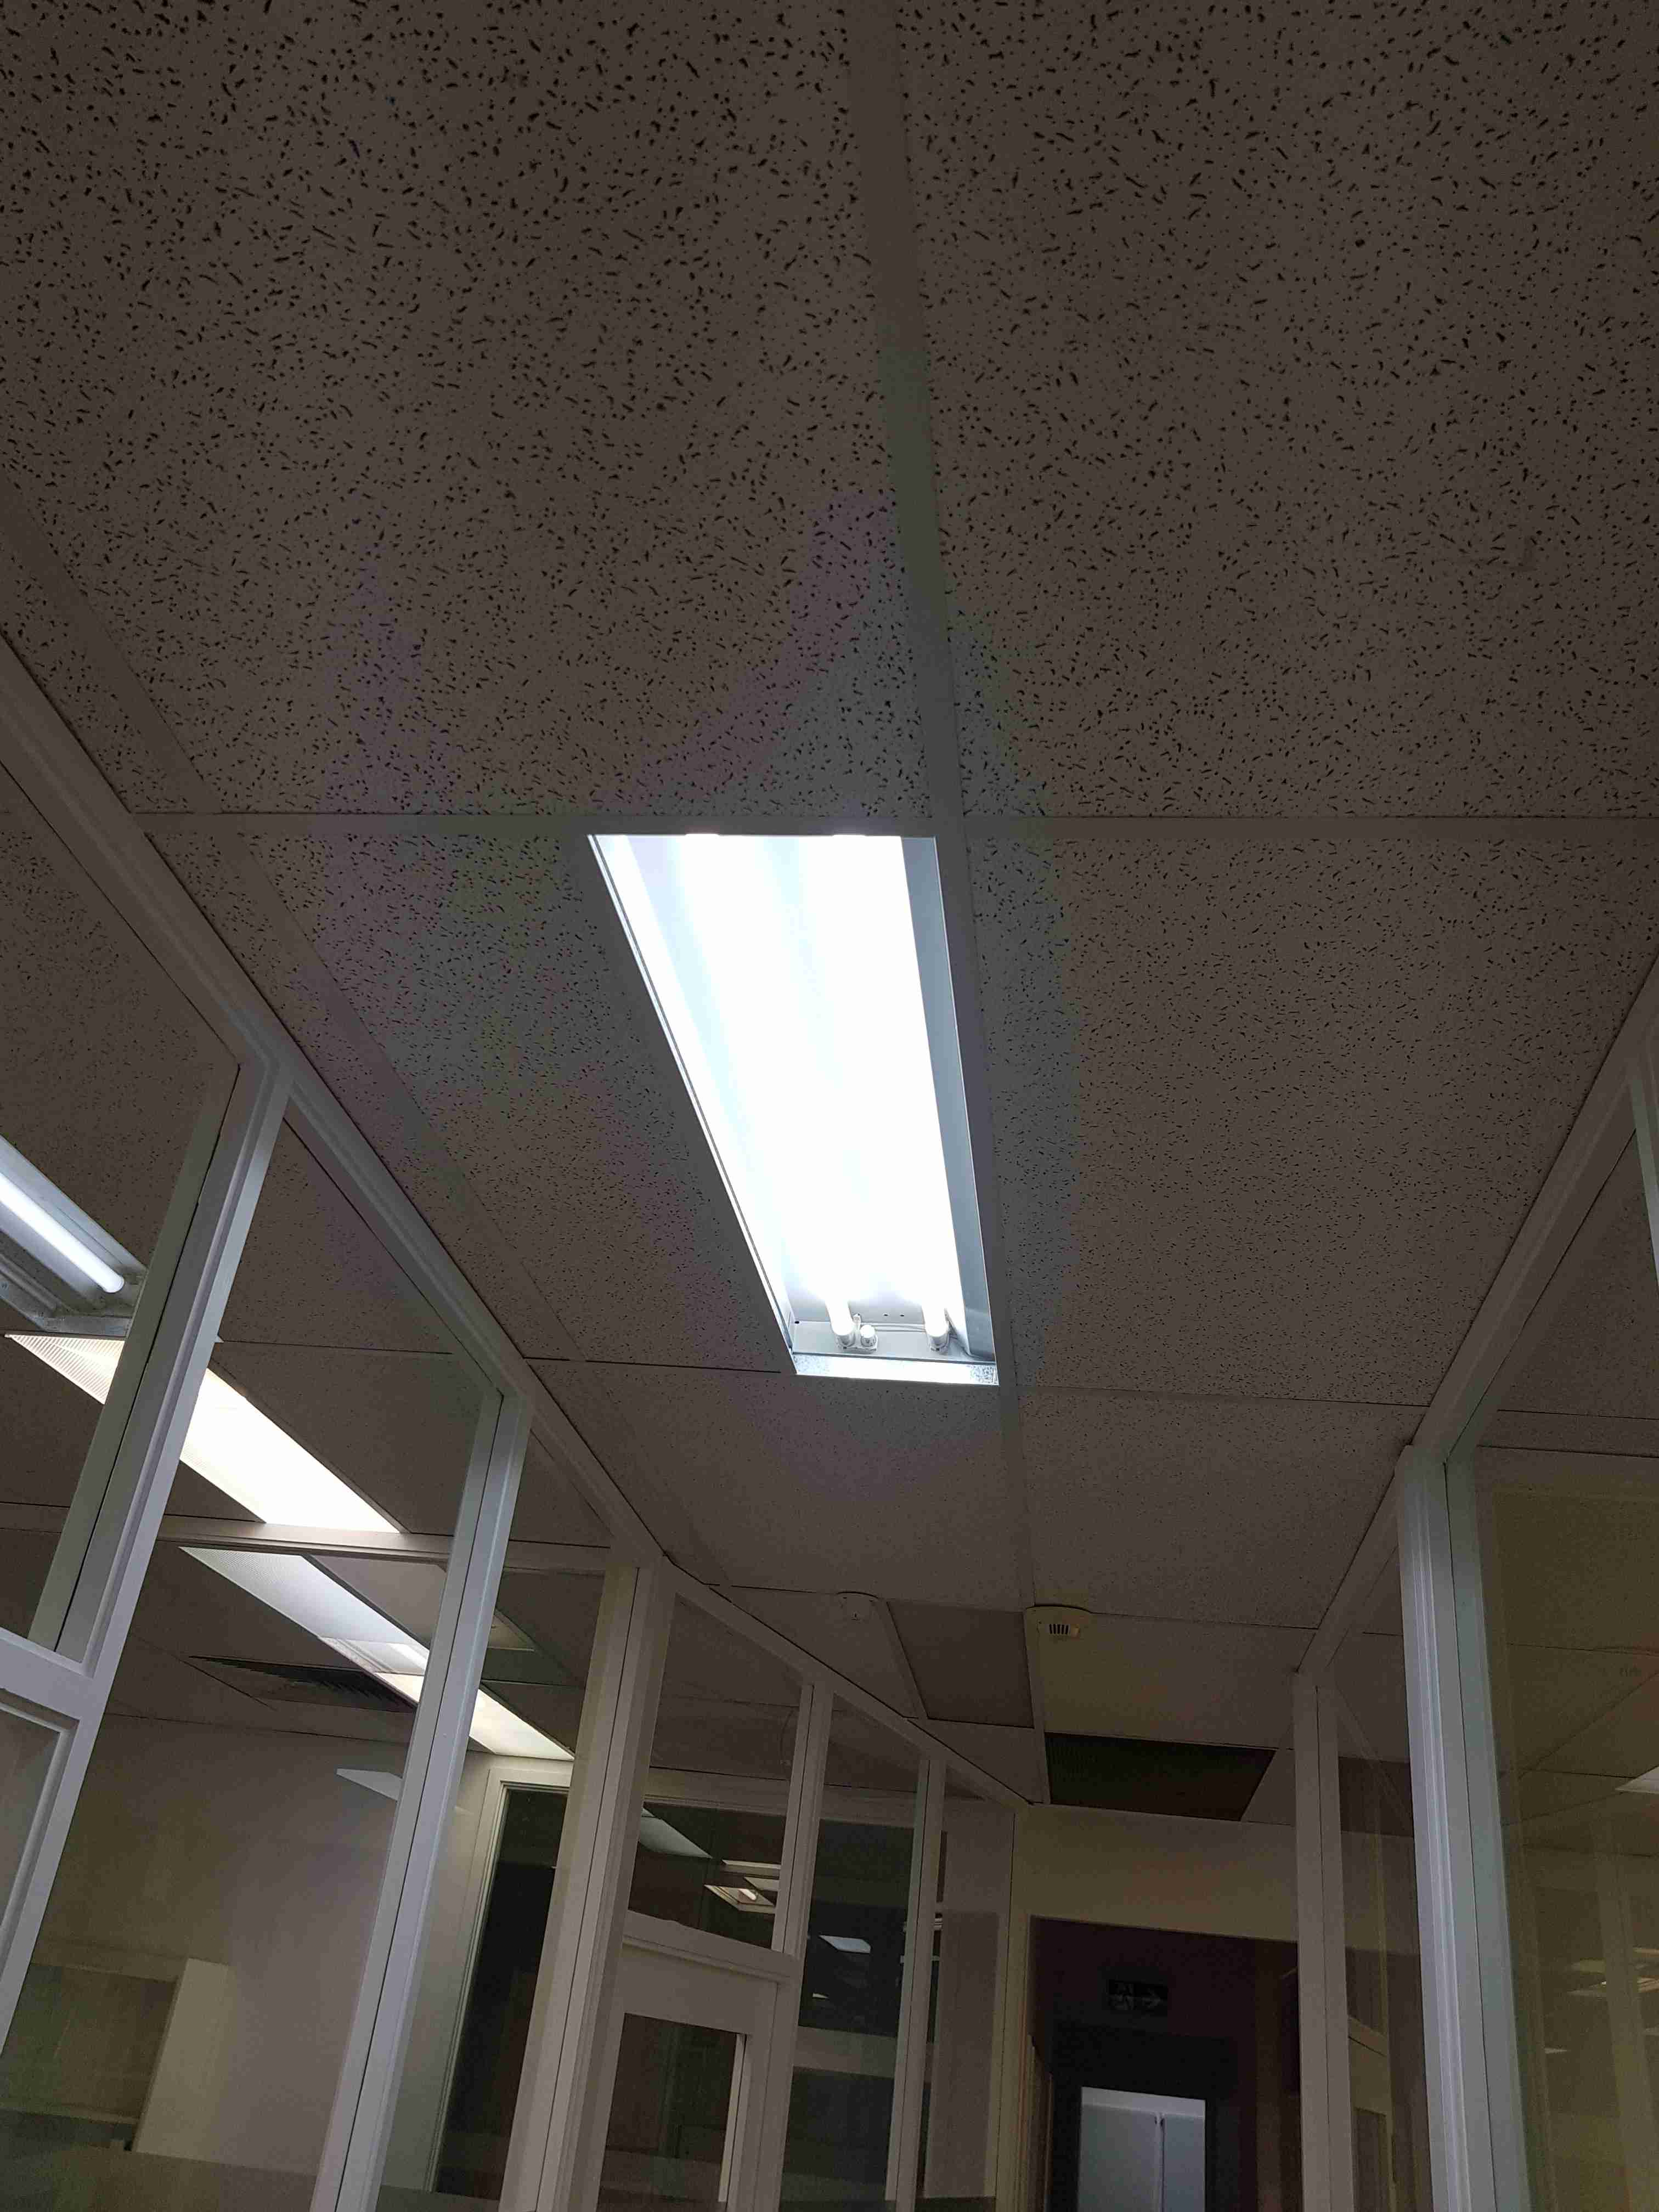 Lighting installation and Repairs - Geelong VIC By Mr. Electric of Geelong via i4Tradies